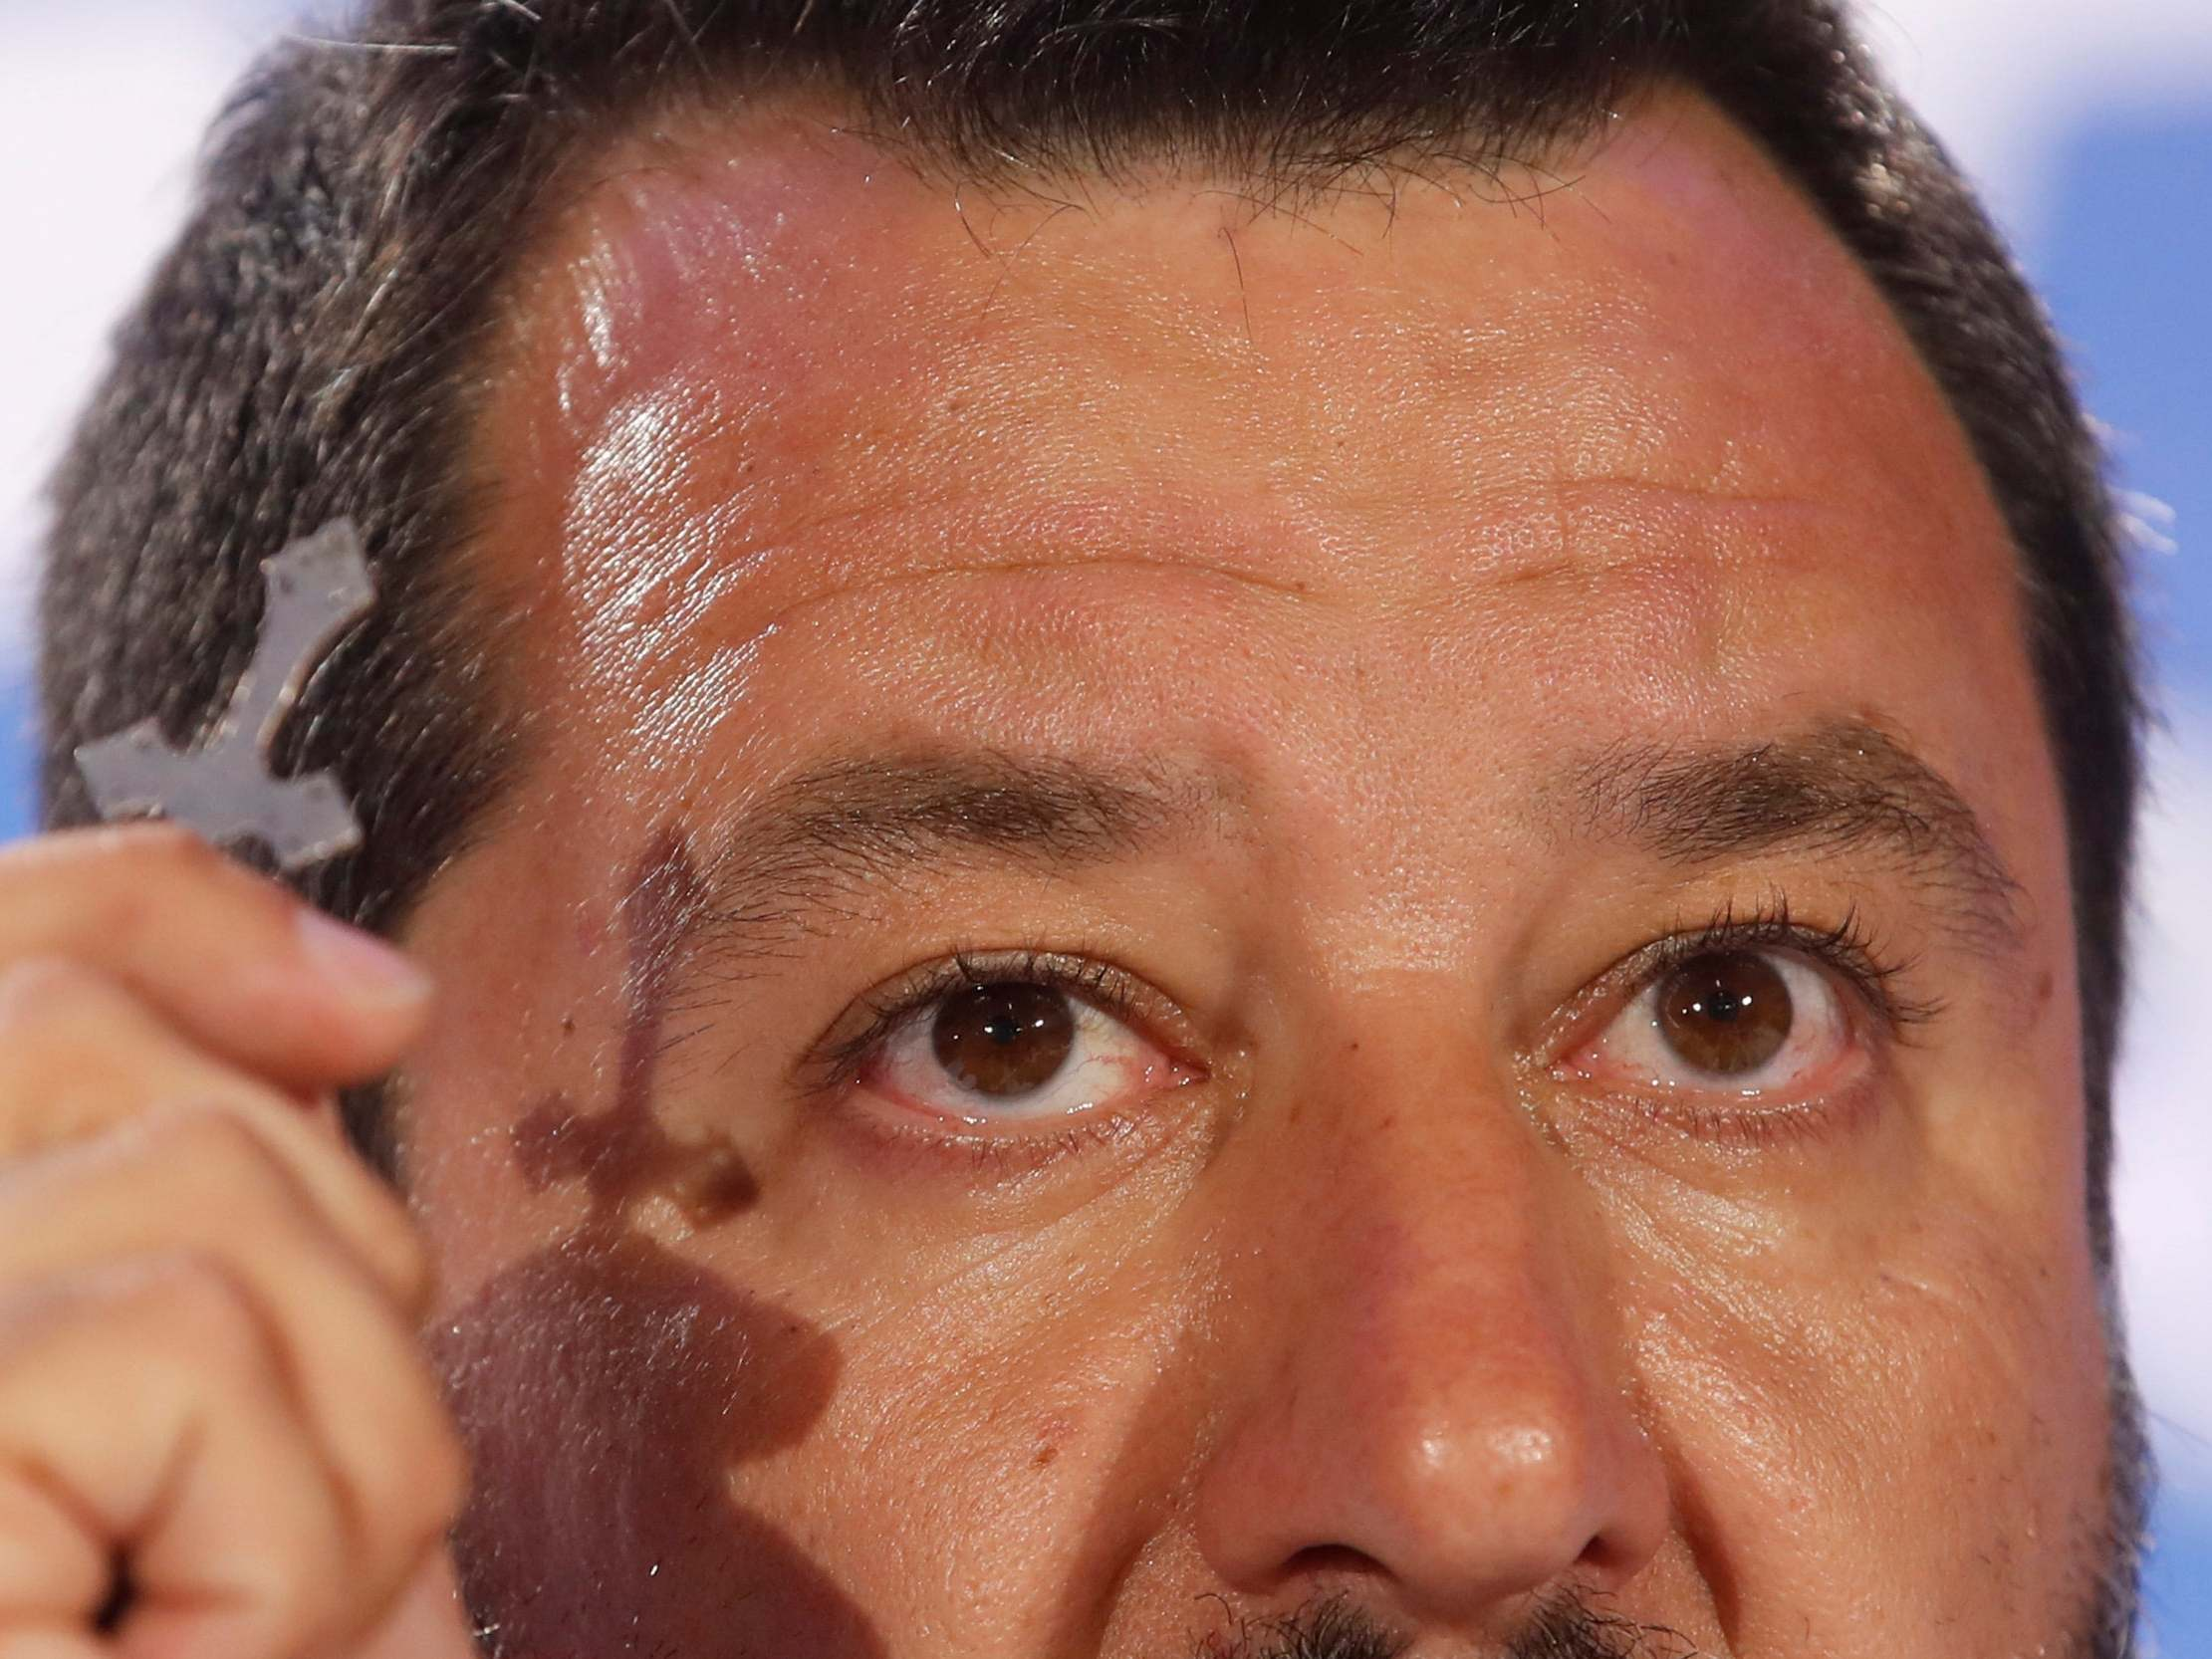 Italy's drift towards the fascist right is not as inevitable as Salvini wants you to think